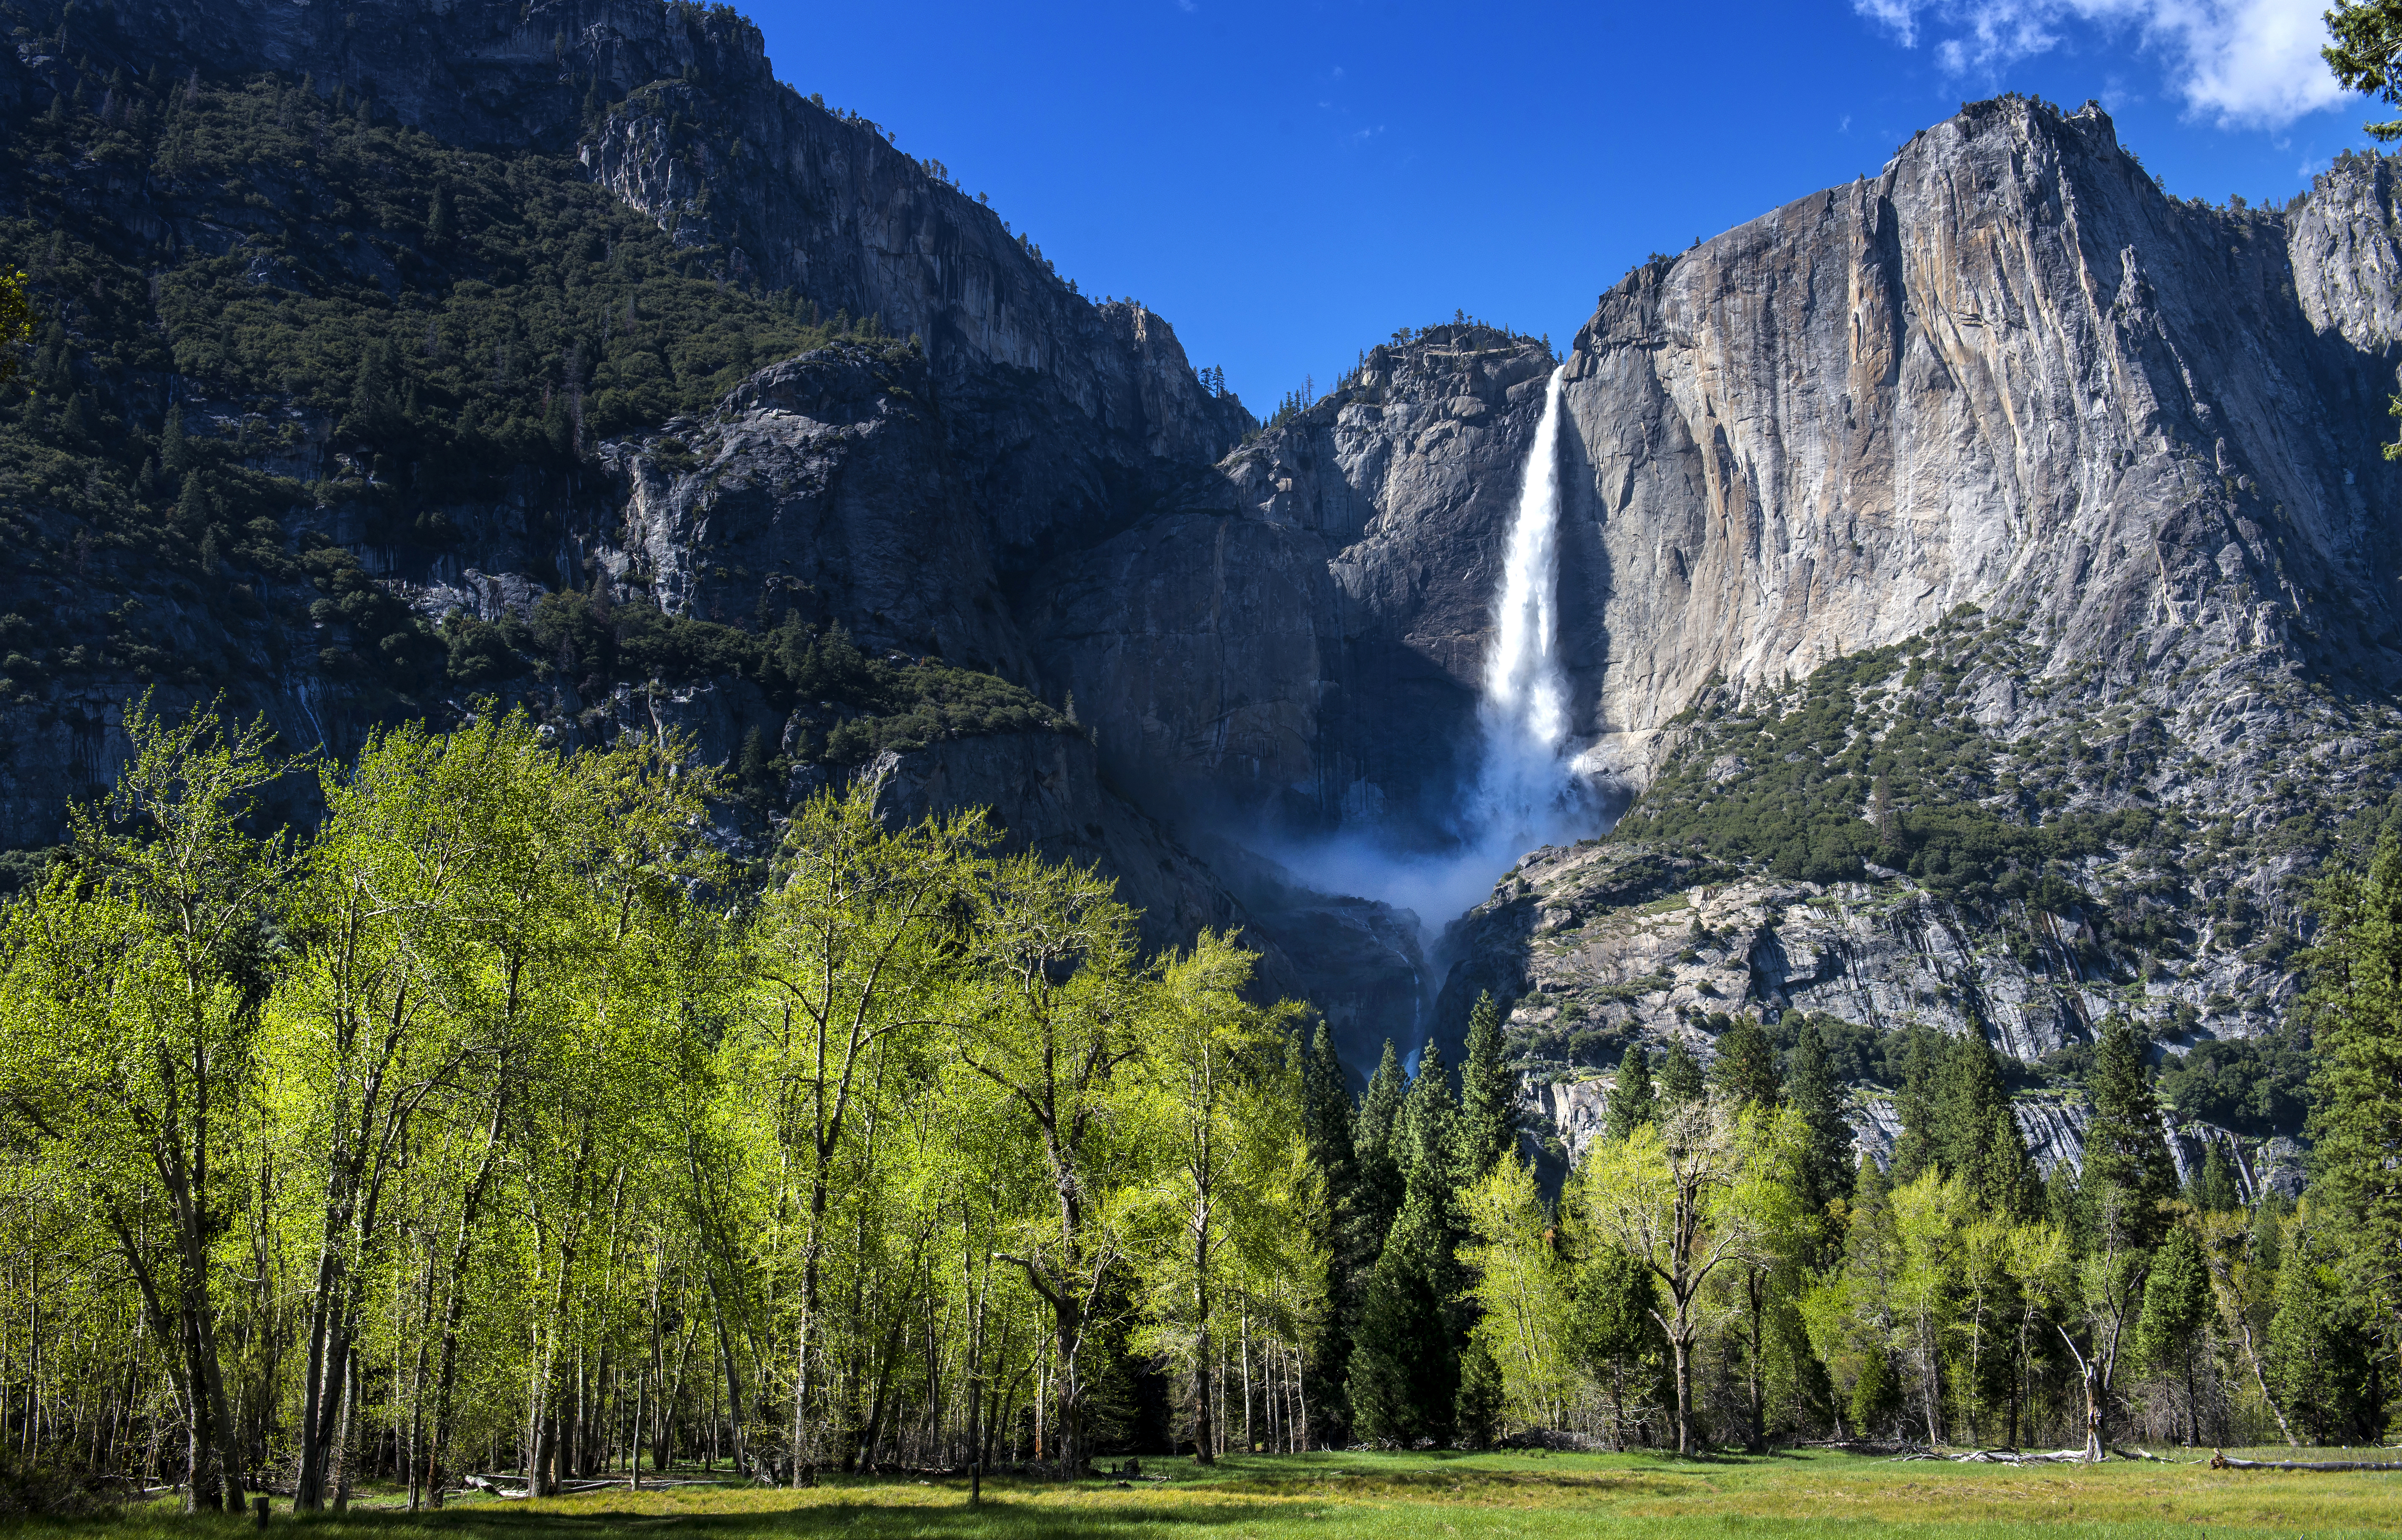 After a rainy winter, Yosemite National Park springs to life ...